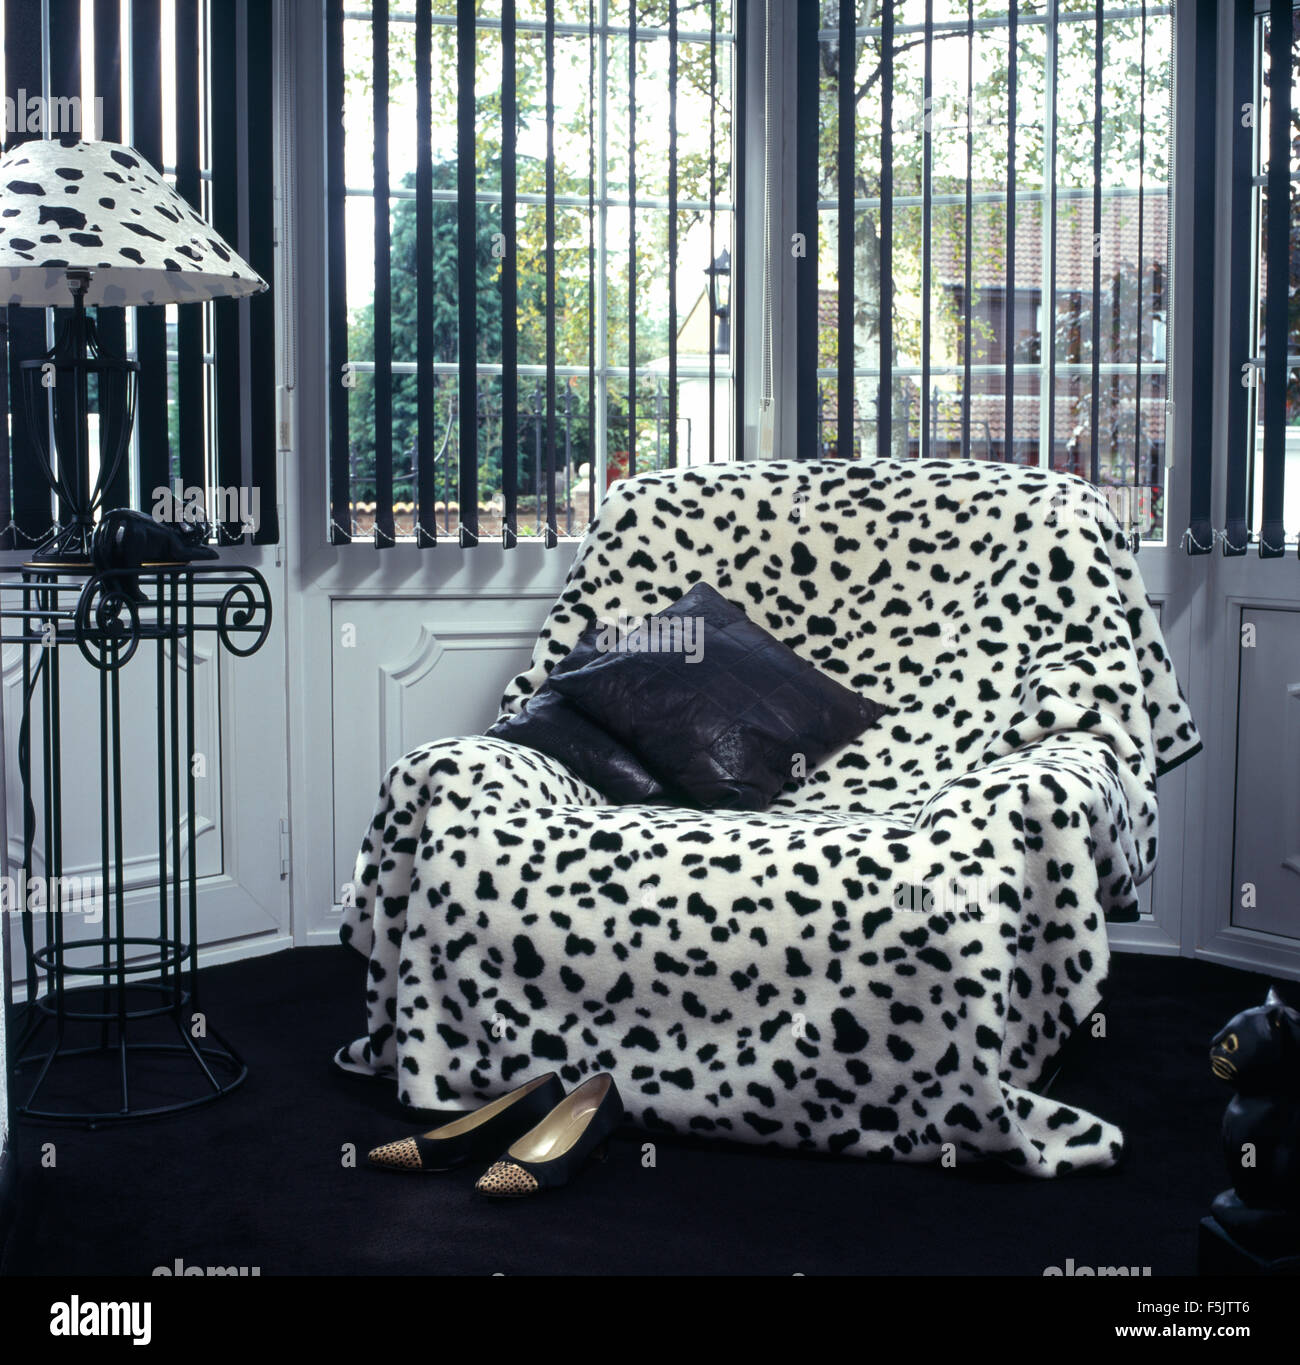 Dalmation Dog Printed Throw On Armchair In Front Of Window With Black  Venetian Blind In A Black+white Nineties Living Room